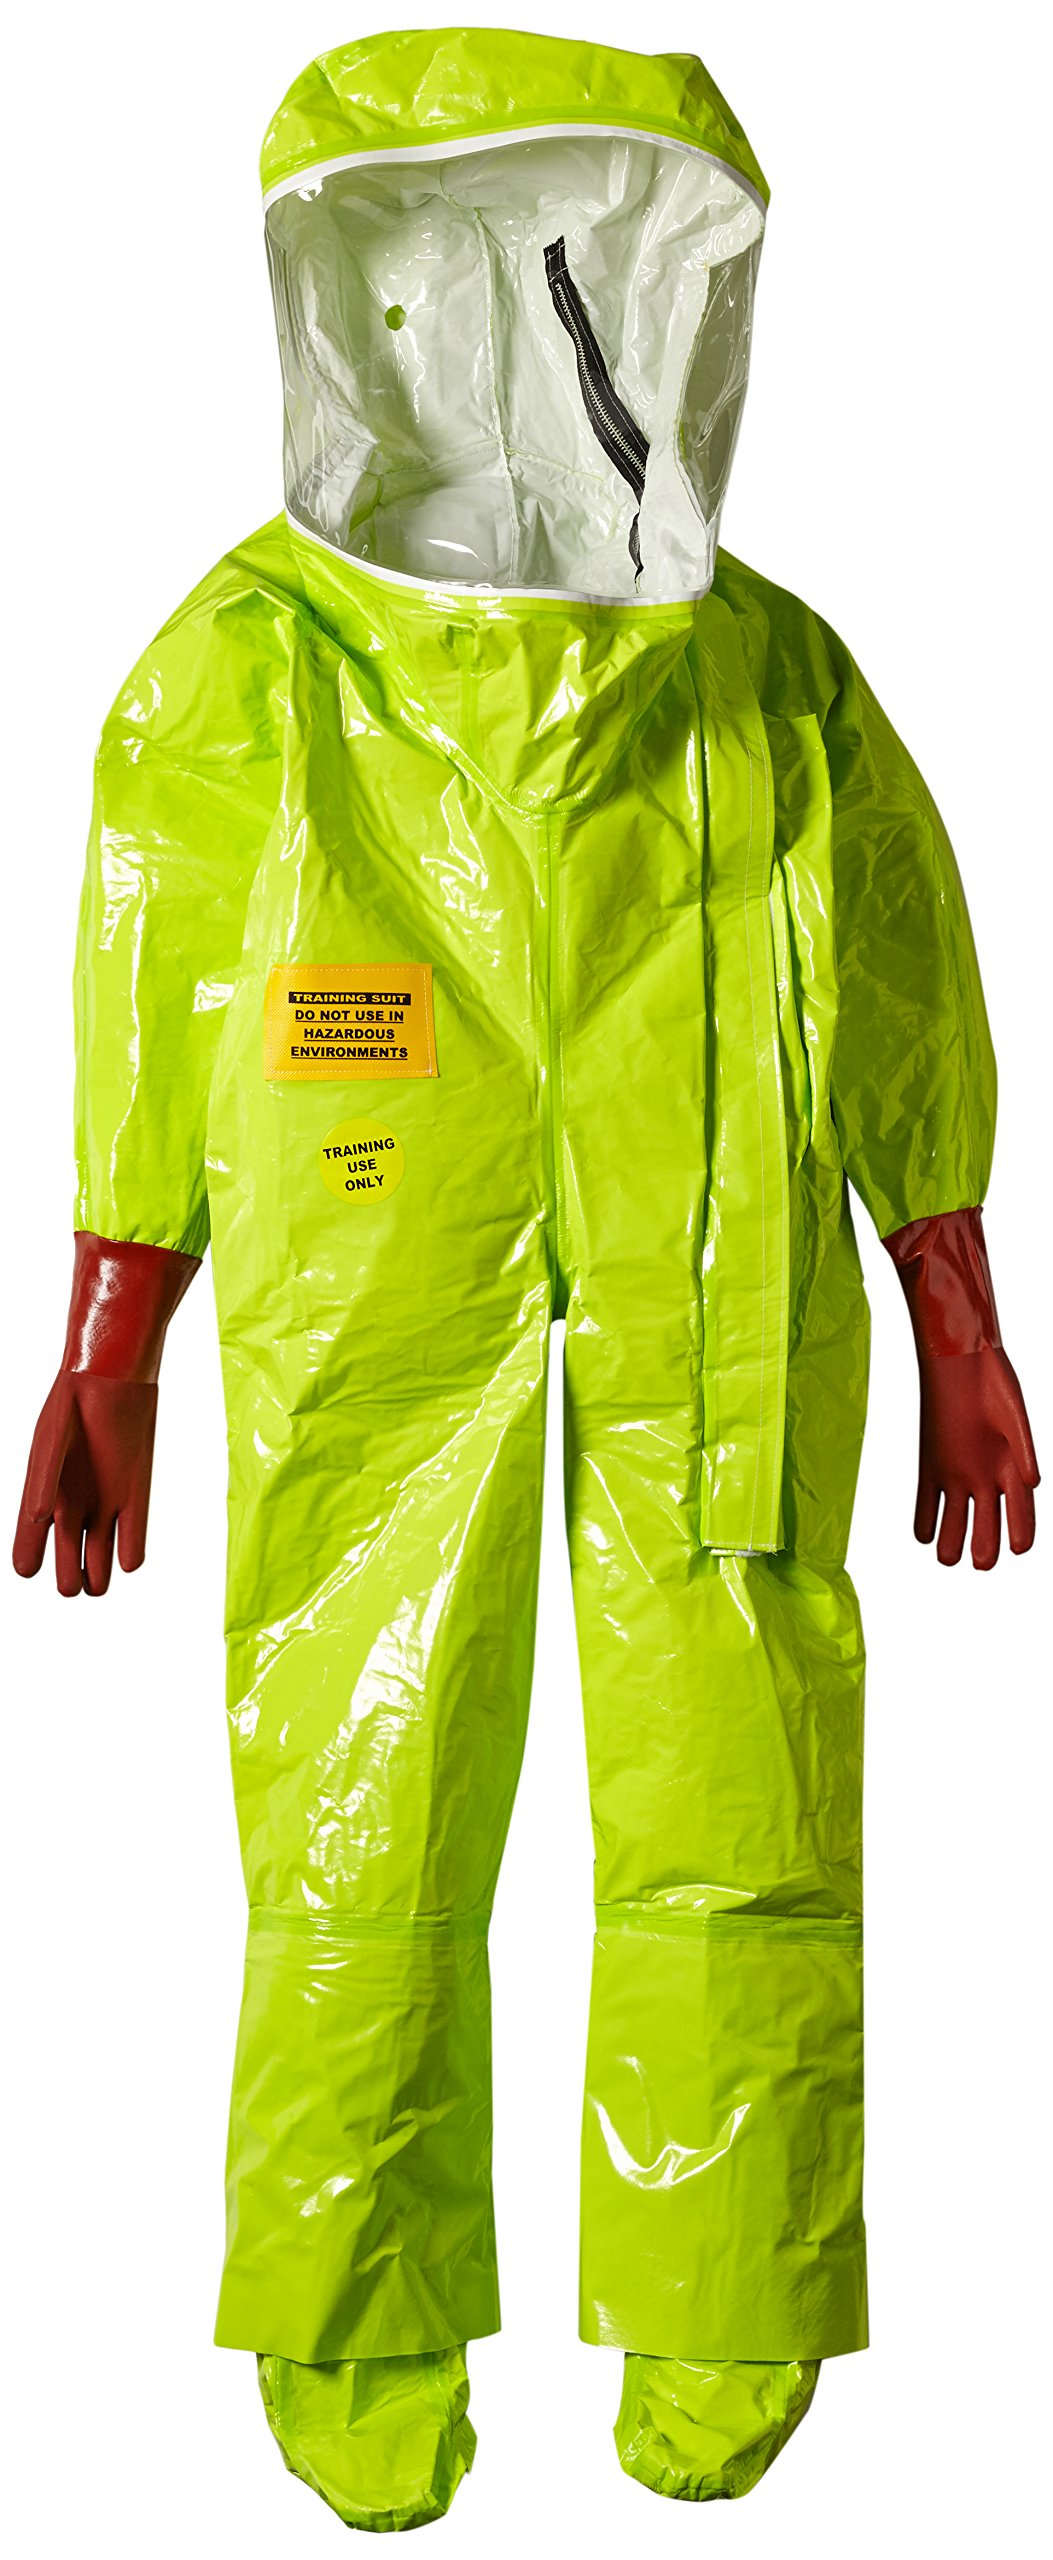 Dupont TK586TLYLG000100 EncapTrainSuit, Expanded Back, Front Entry, Taped Seams, Large, Lime Yellow